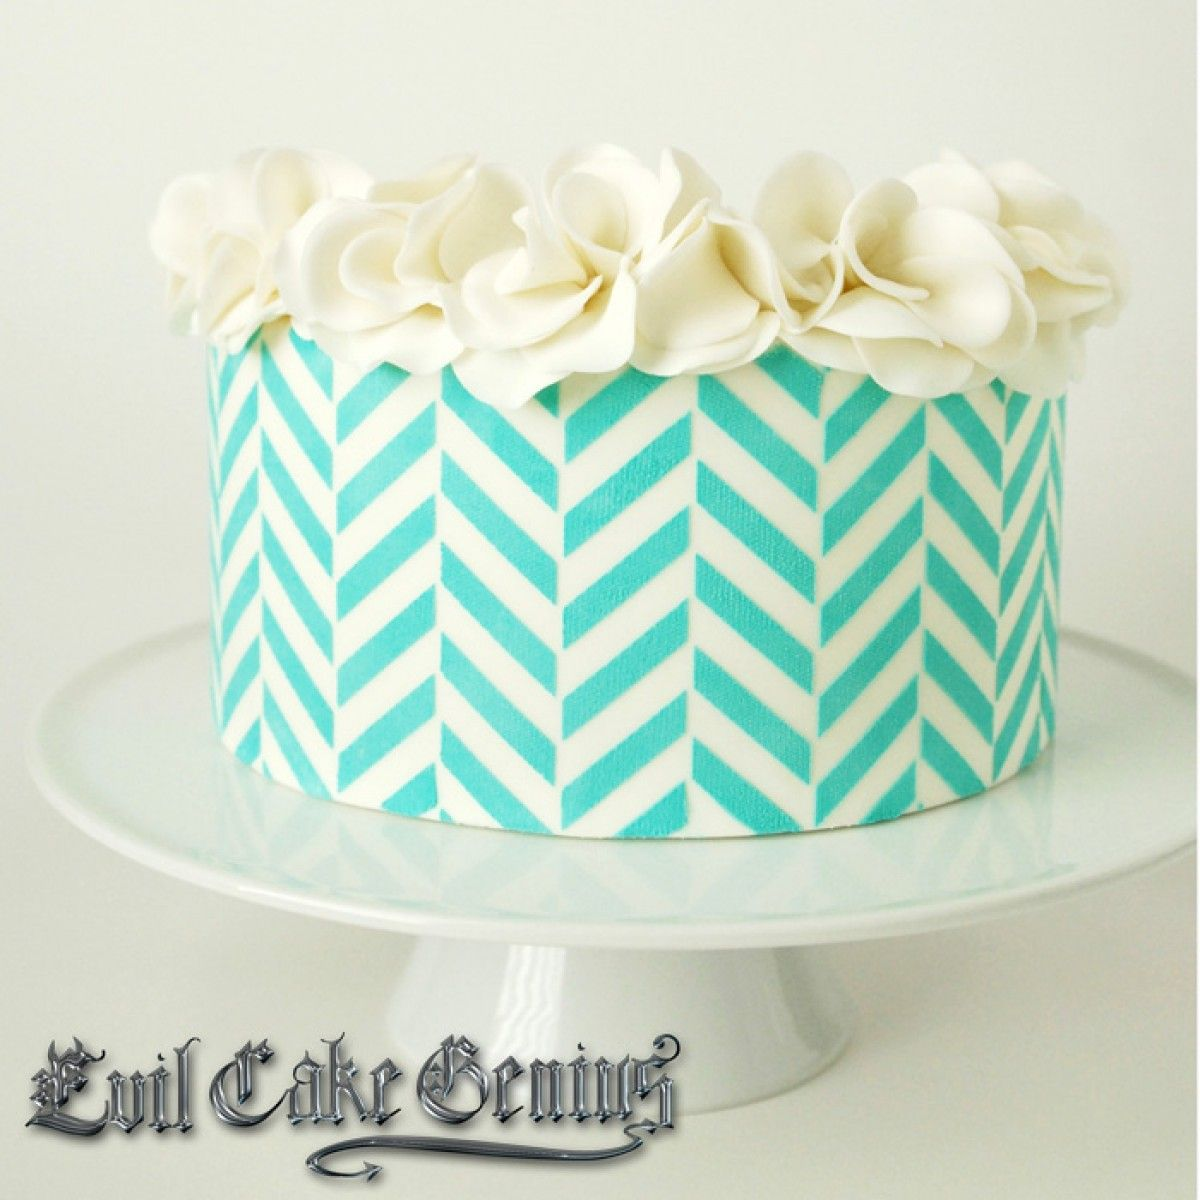 Herringbone Cake: recipe with photos 93